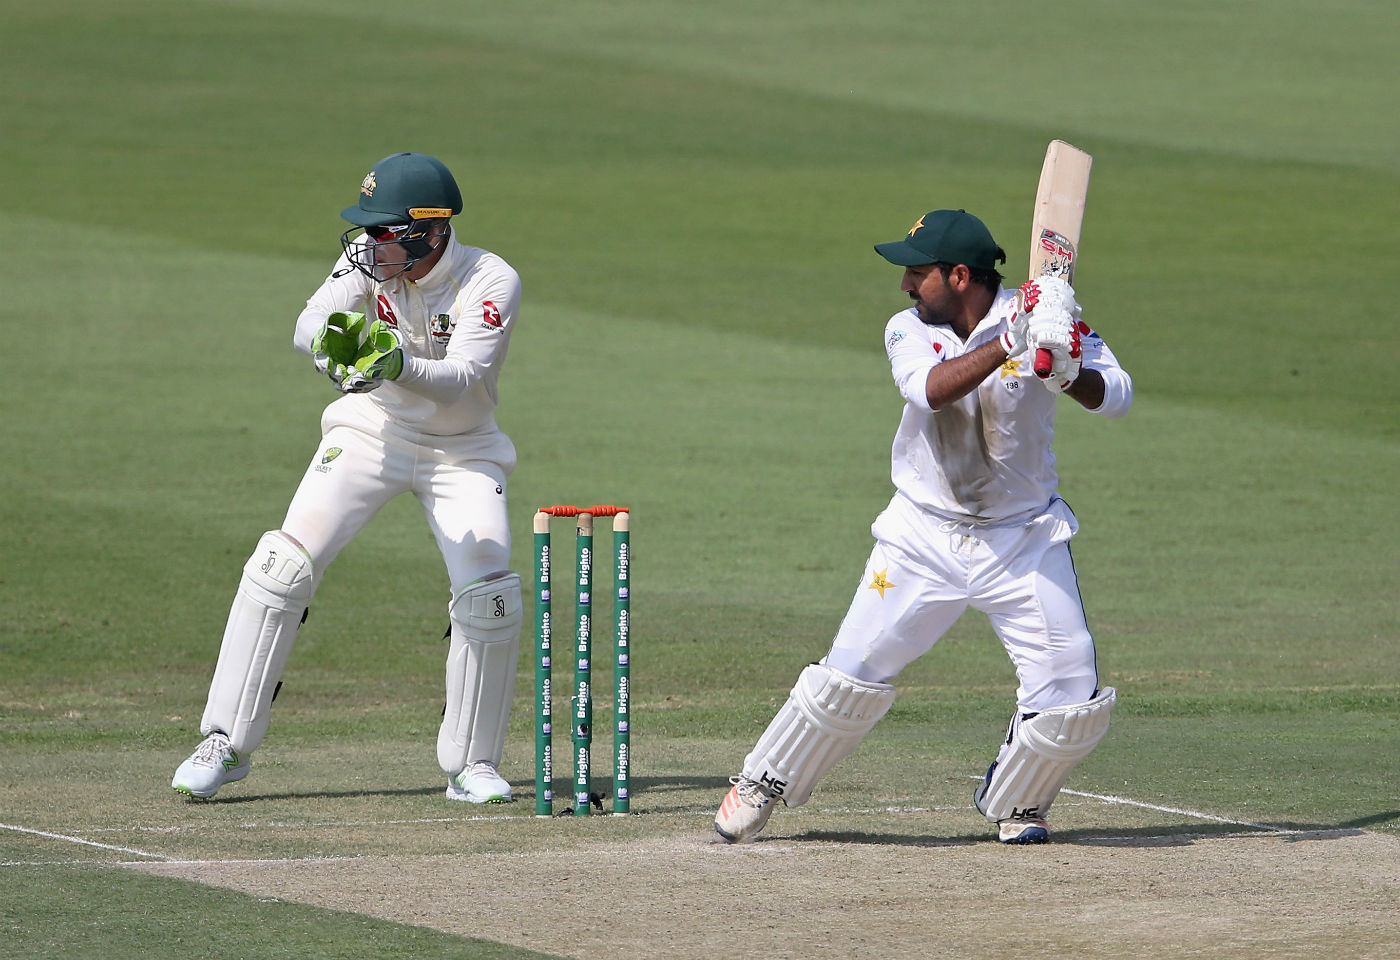 Australia reduced to 20/2 at Stumps on Day 1, in reply to Pakistan's 282 all out